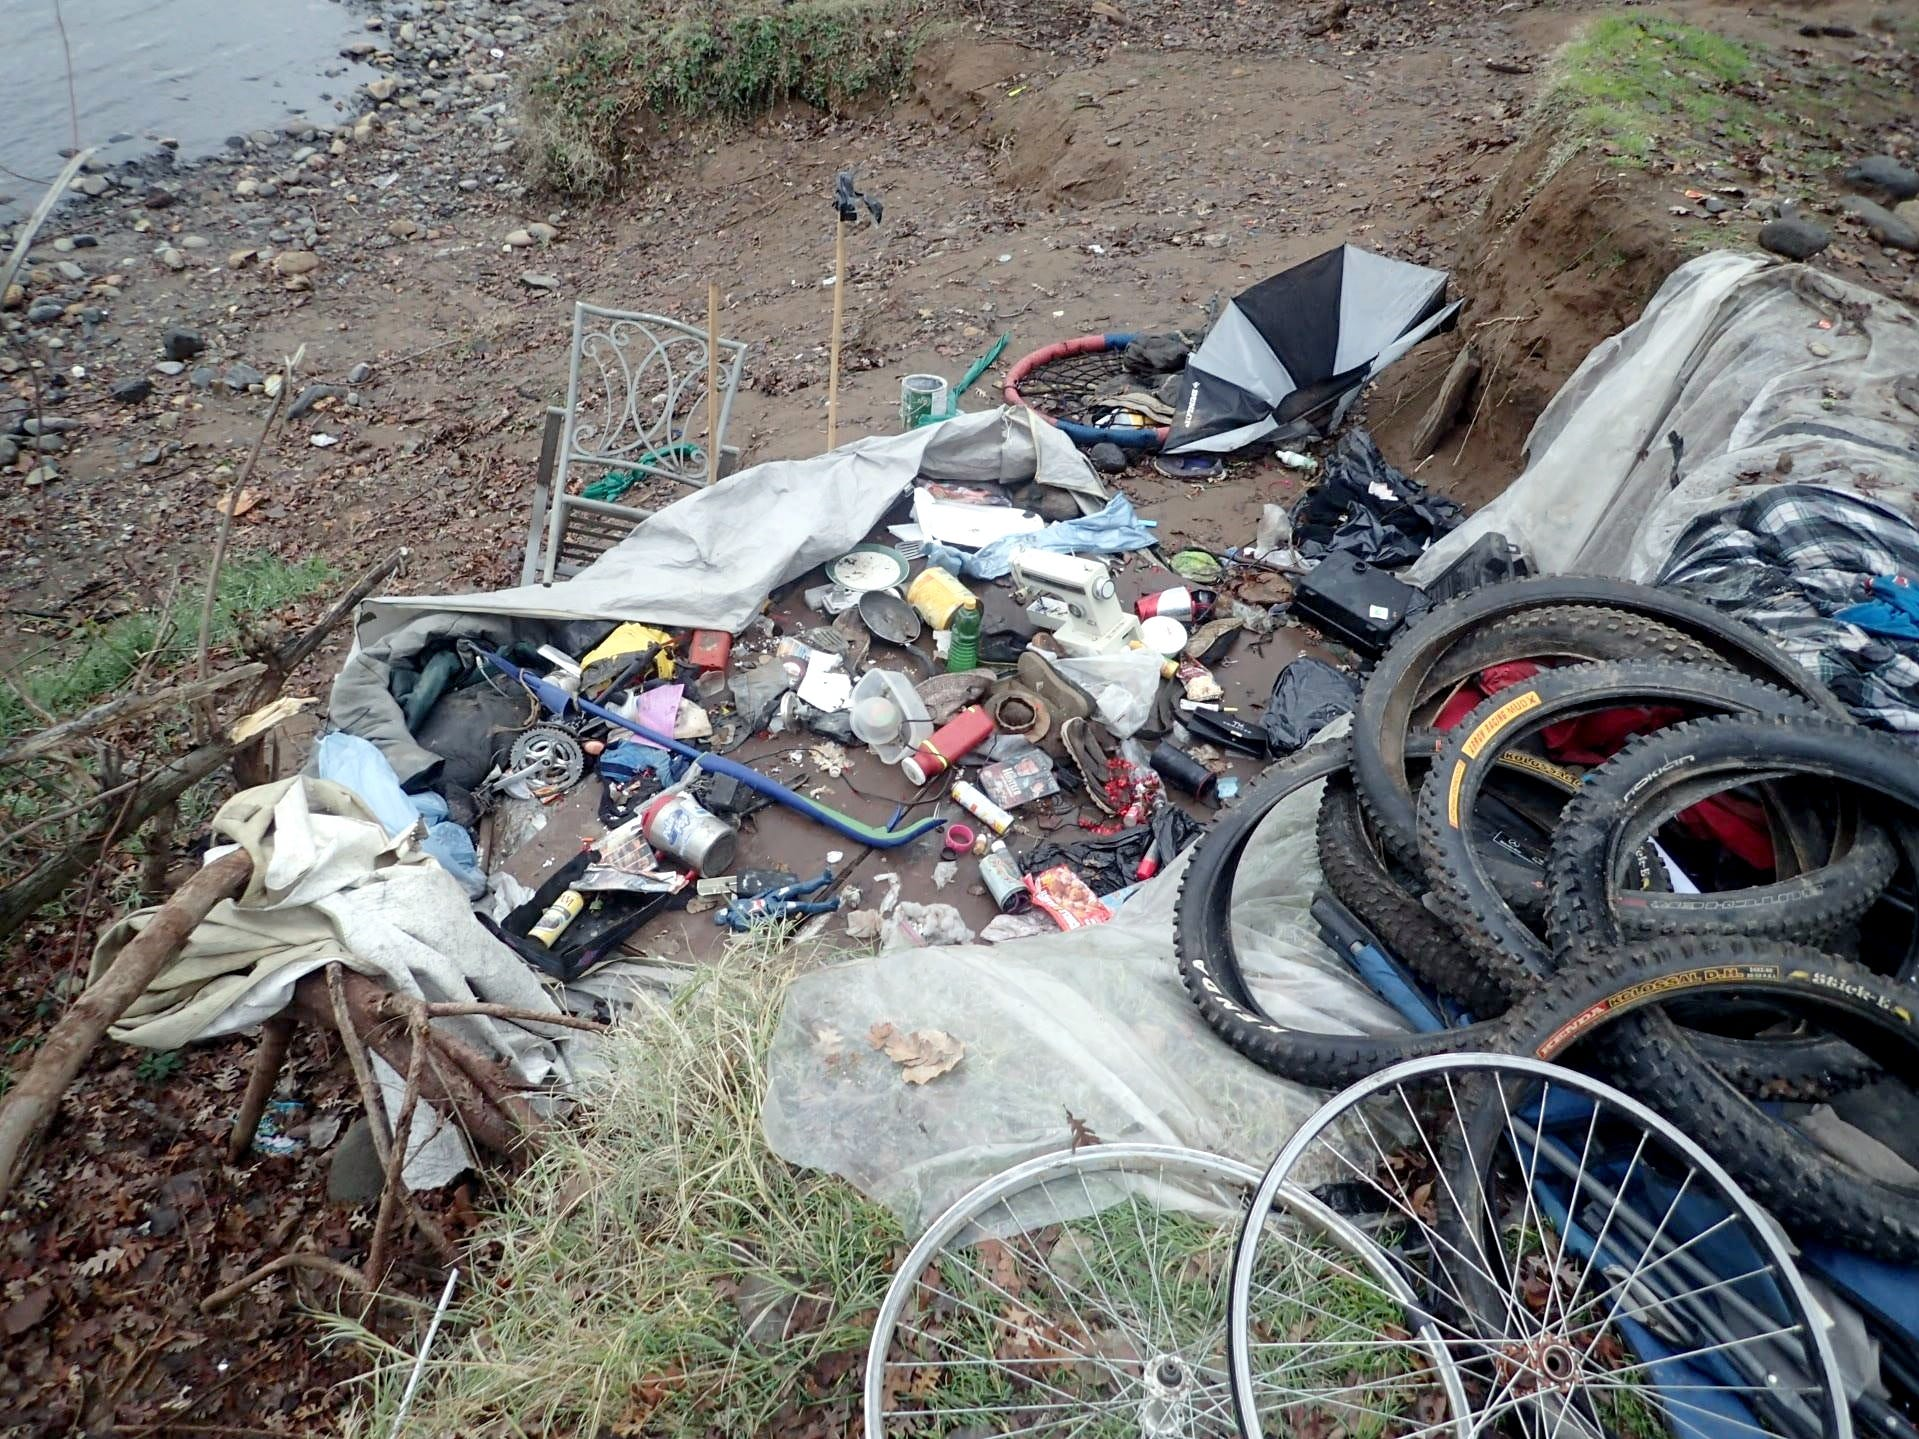 Bicycles tires and other bike parts were among items removed on the banks of the Sacramento River on Jan. 8, 2019, in Redding.